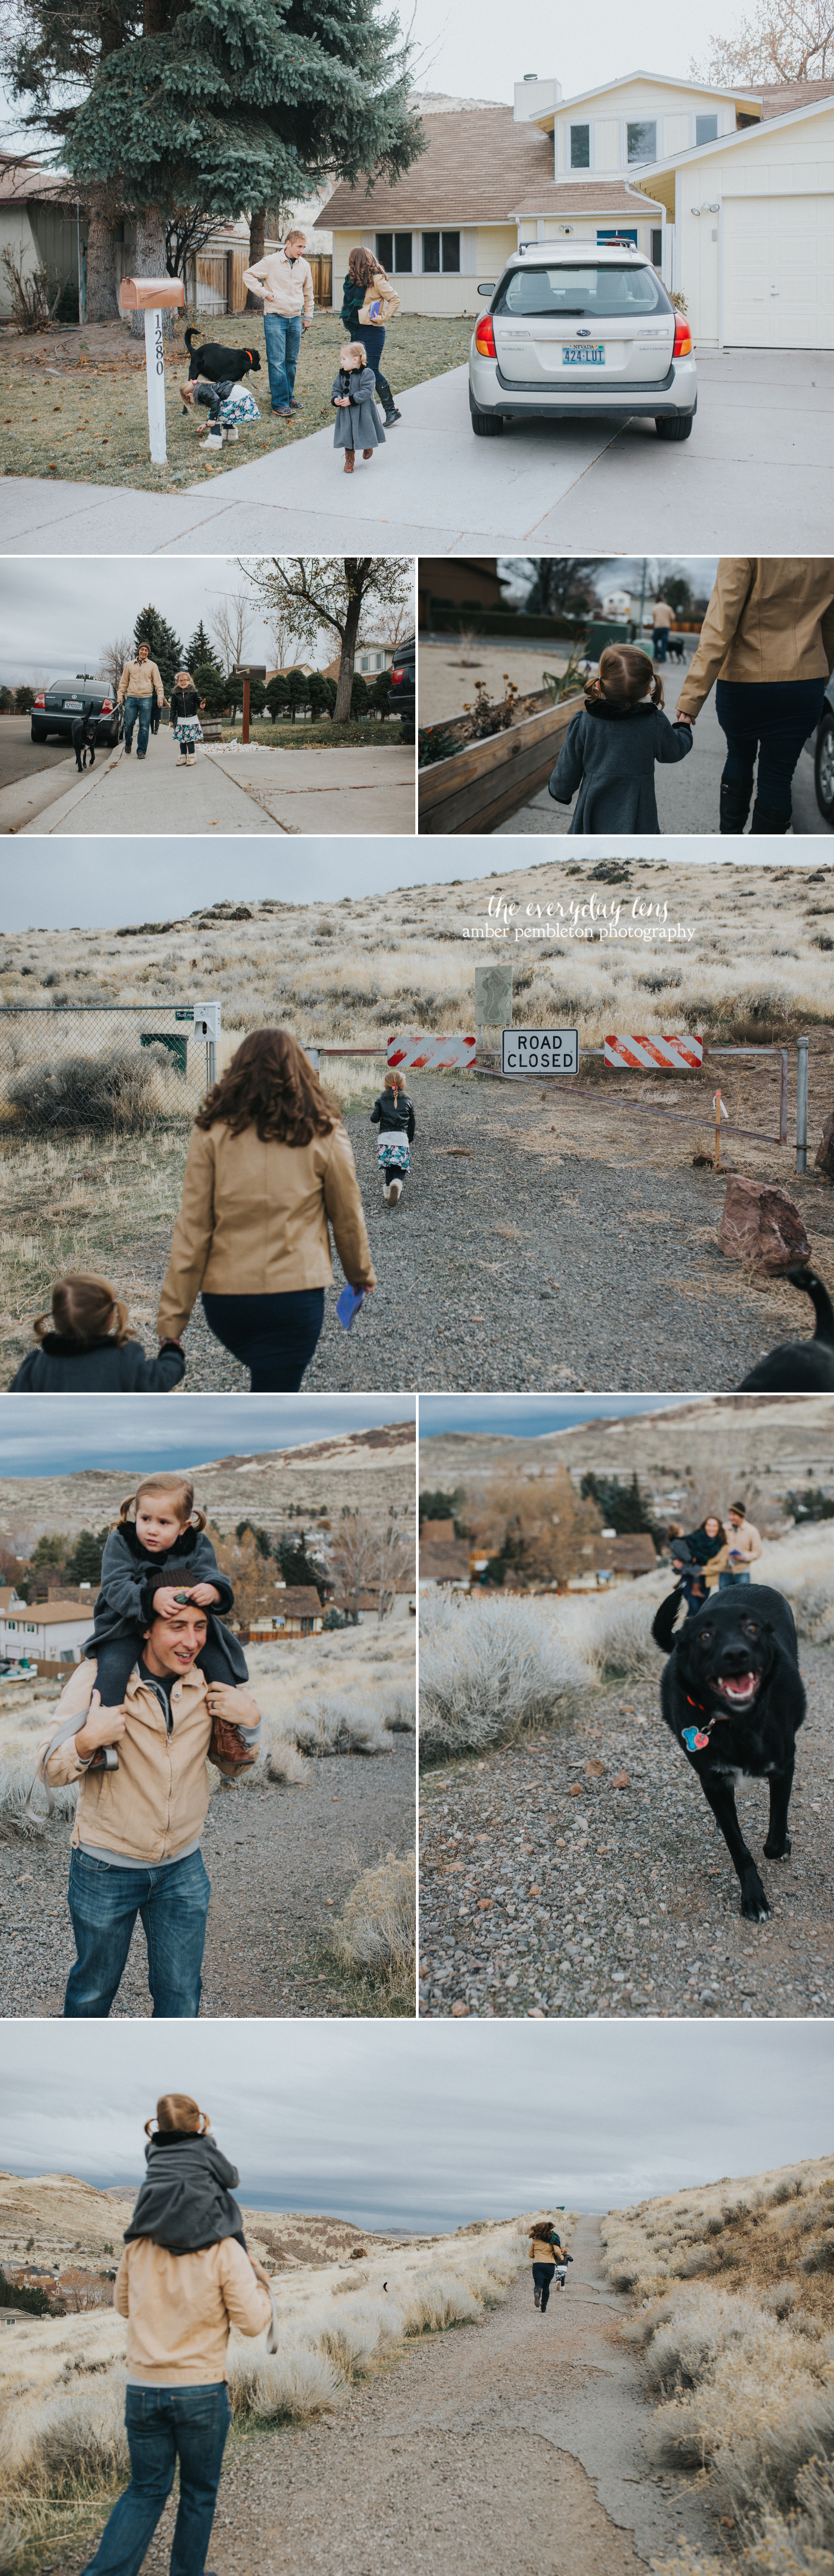 day-in-the-life-photography-session-nevada.jpg